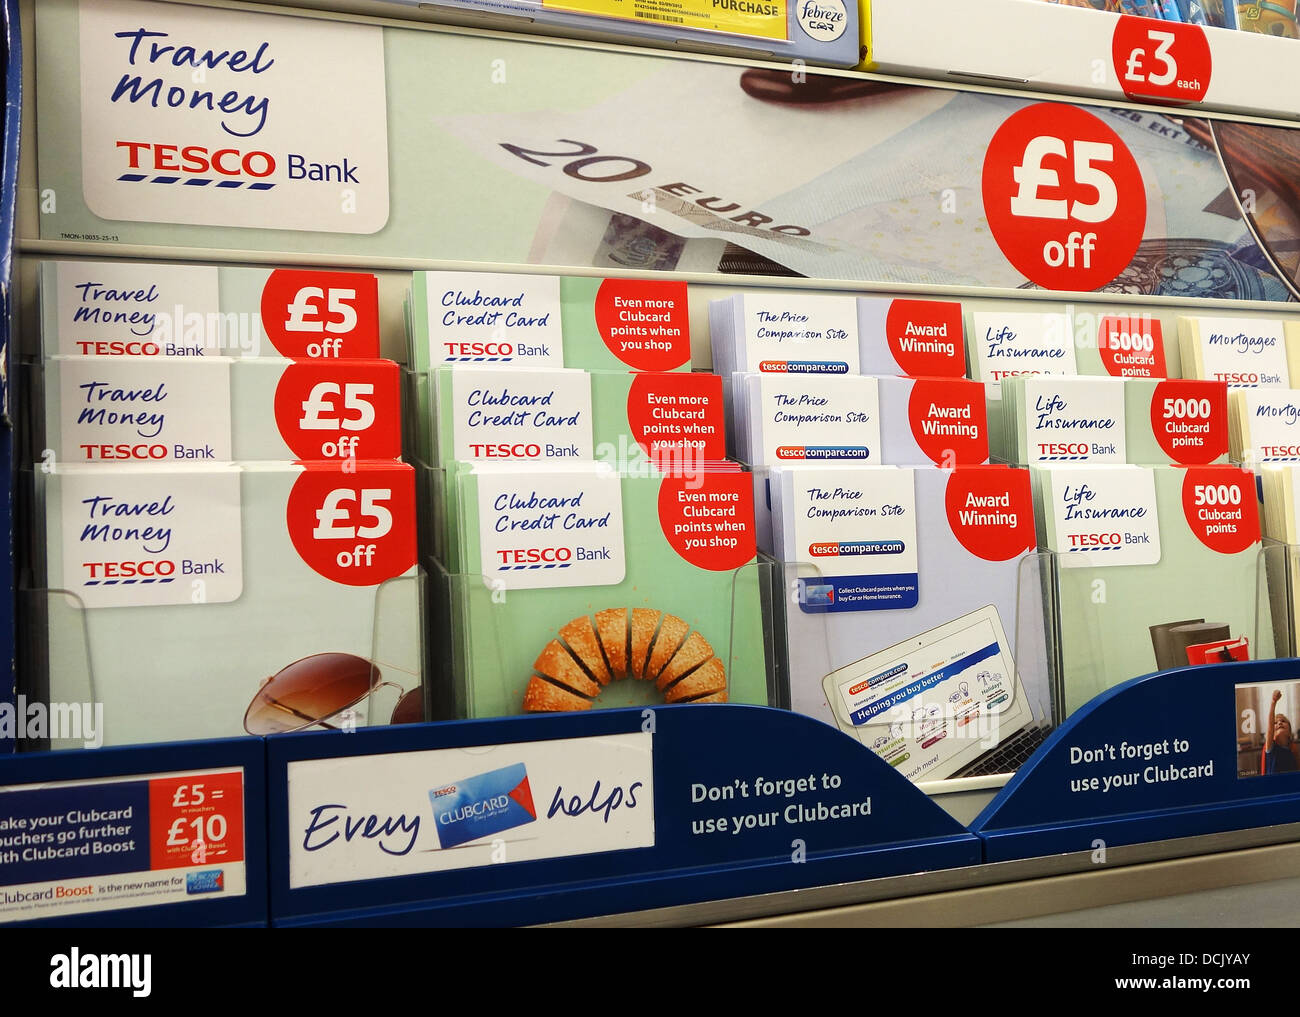 Tesco financial leaflets at a store checkout - Stock Image